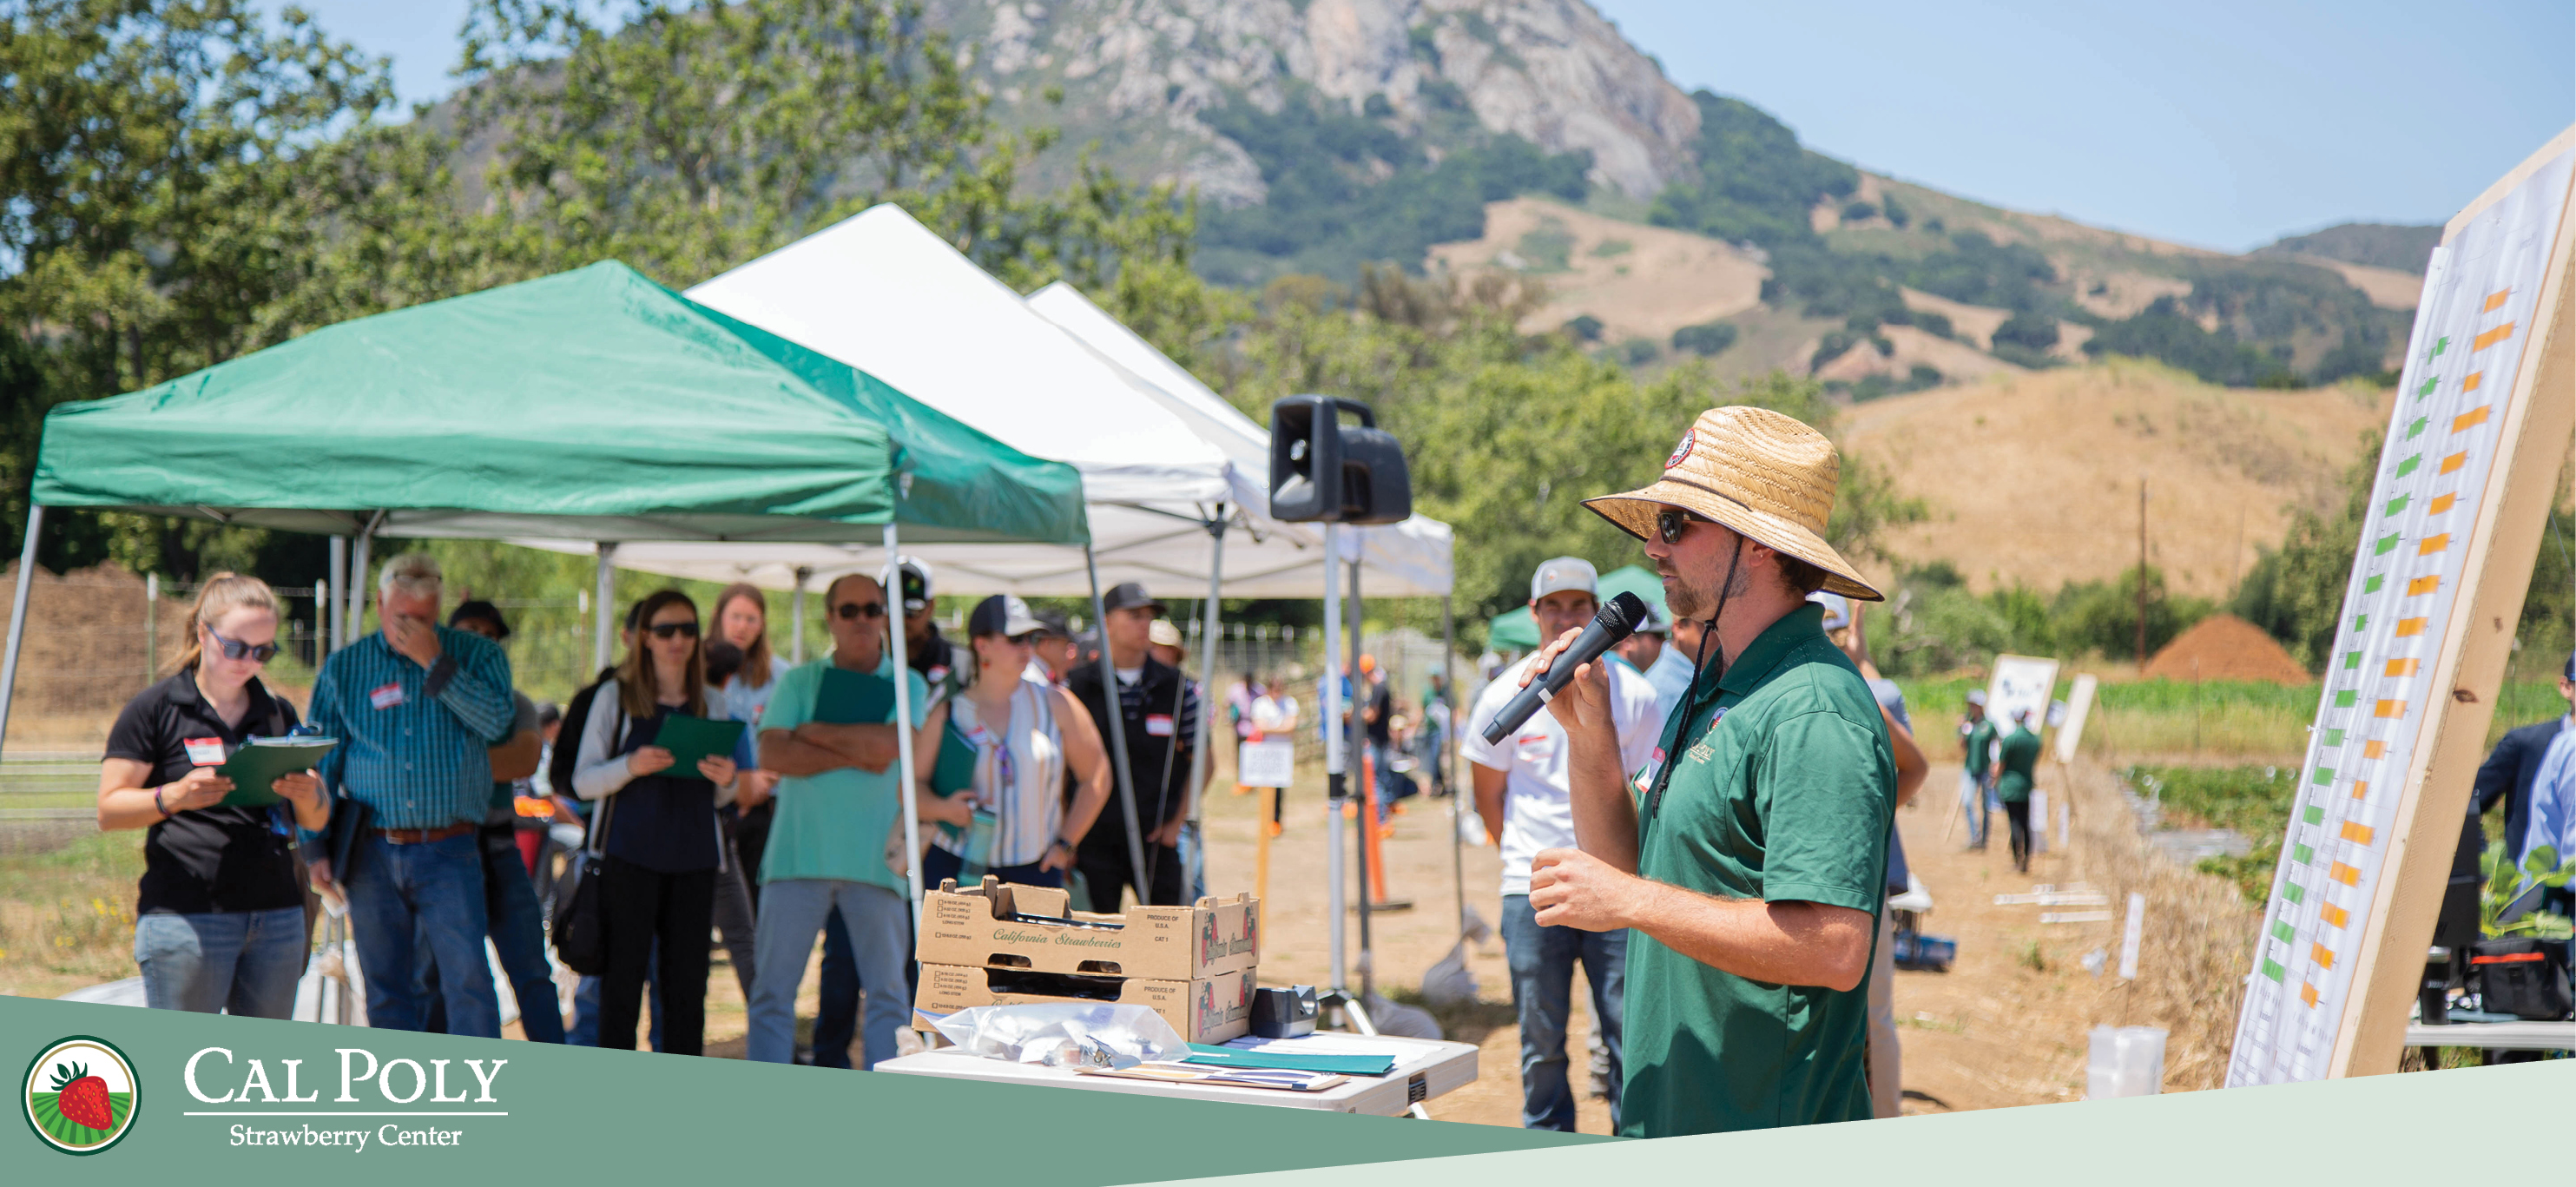 Cal Poly Strawberry Center hosts third annual field day event.